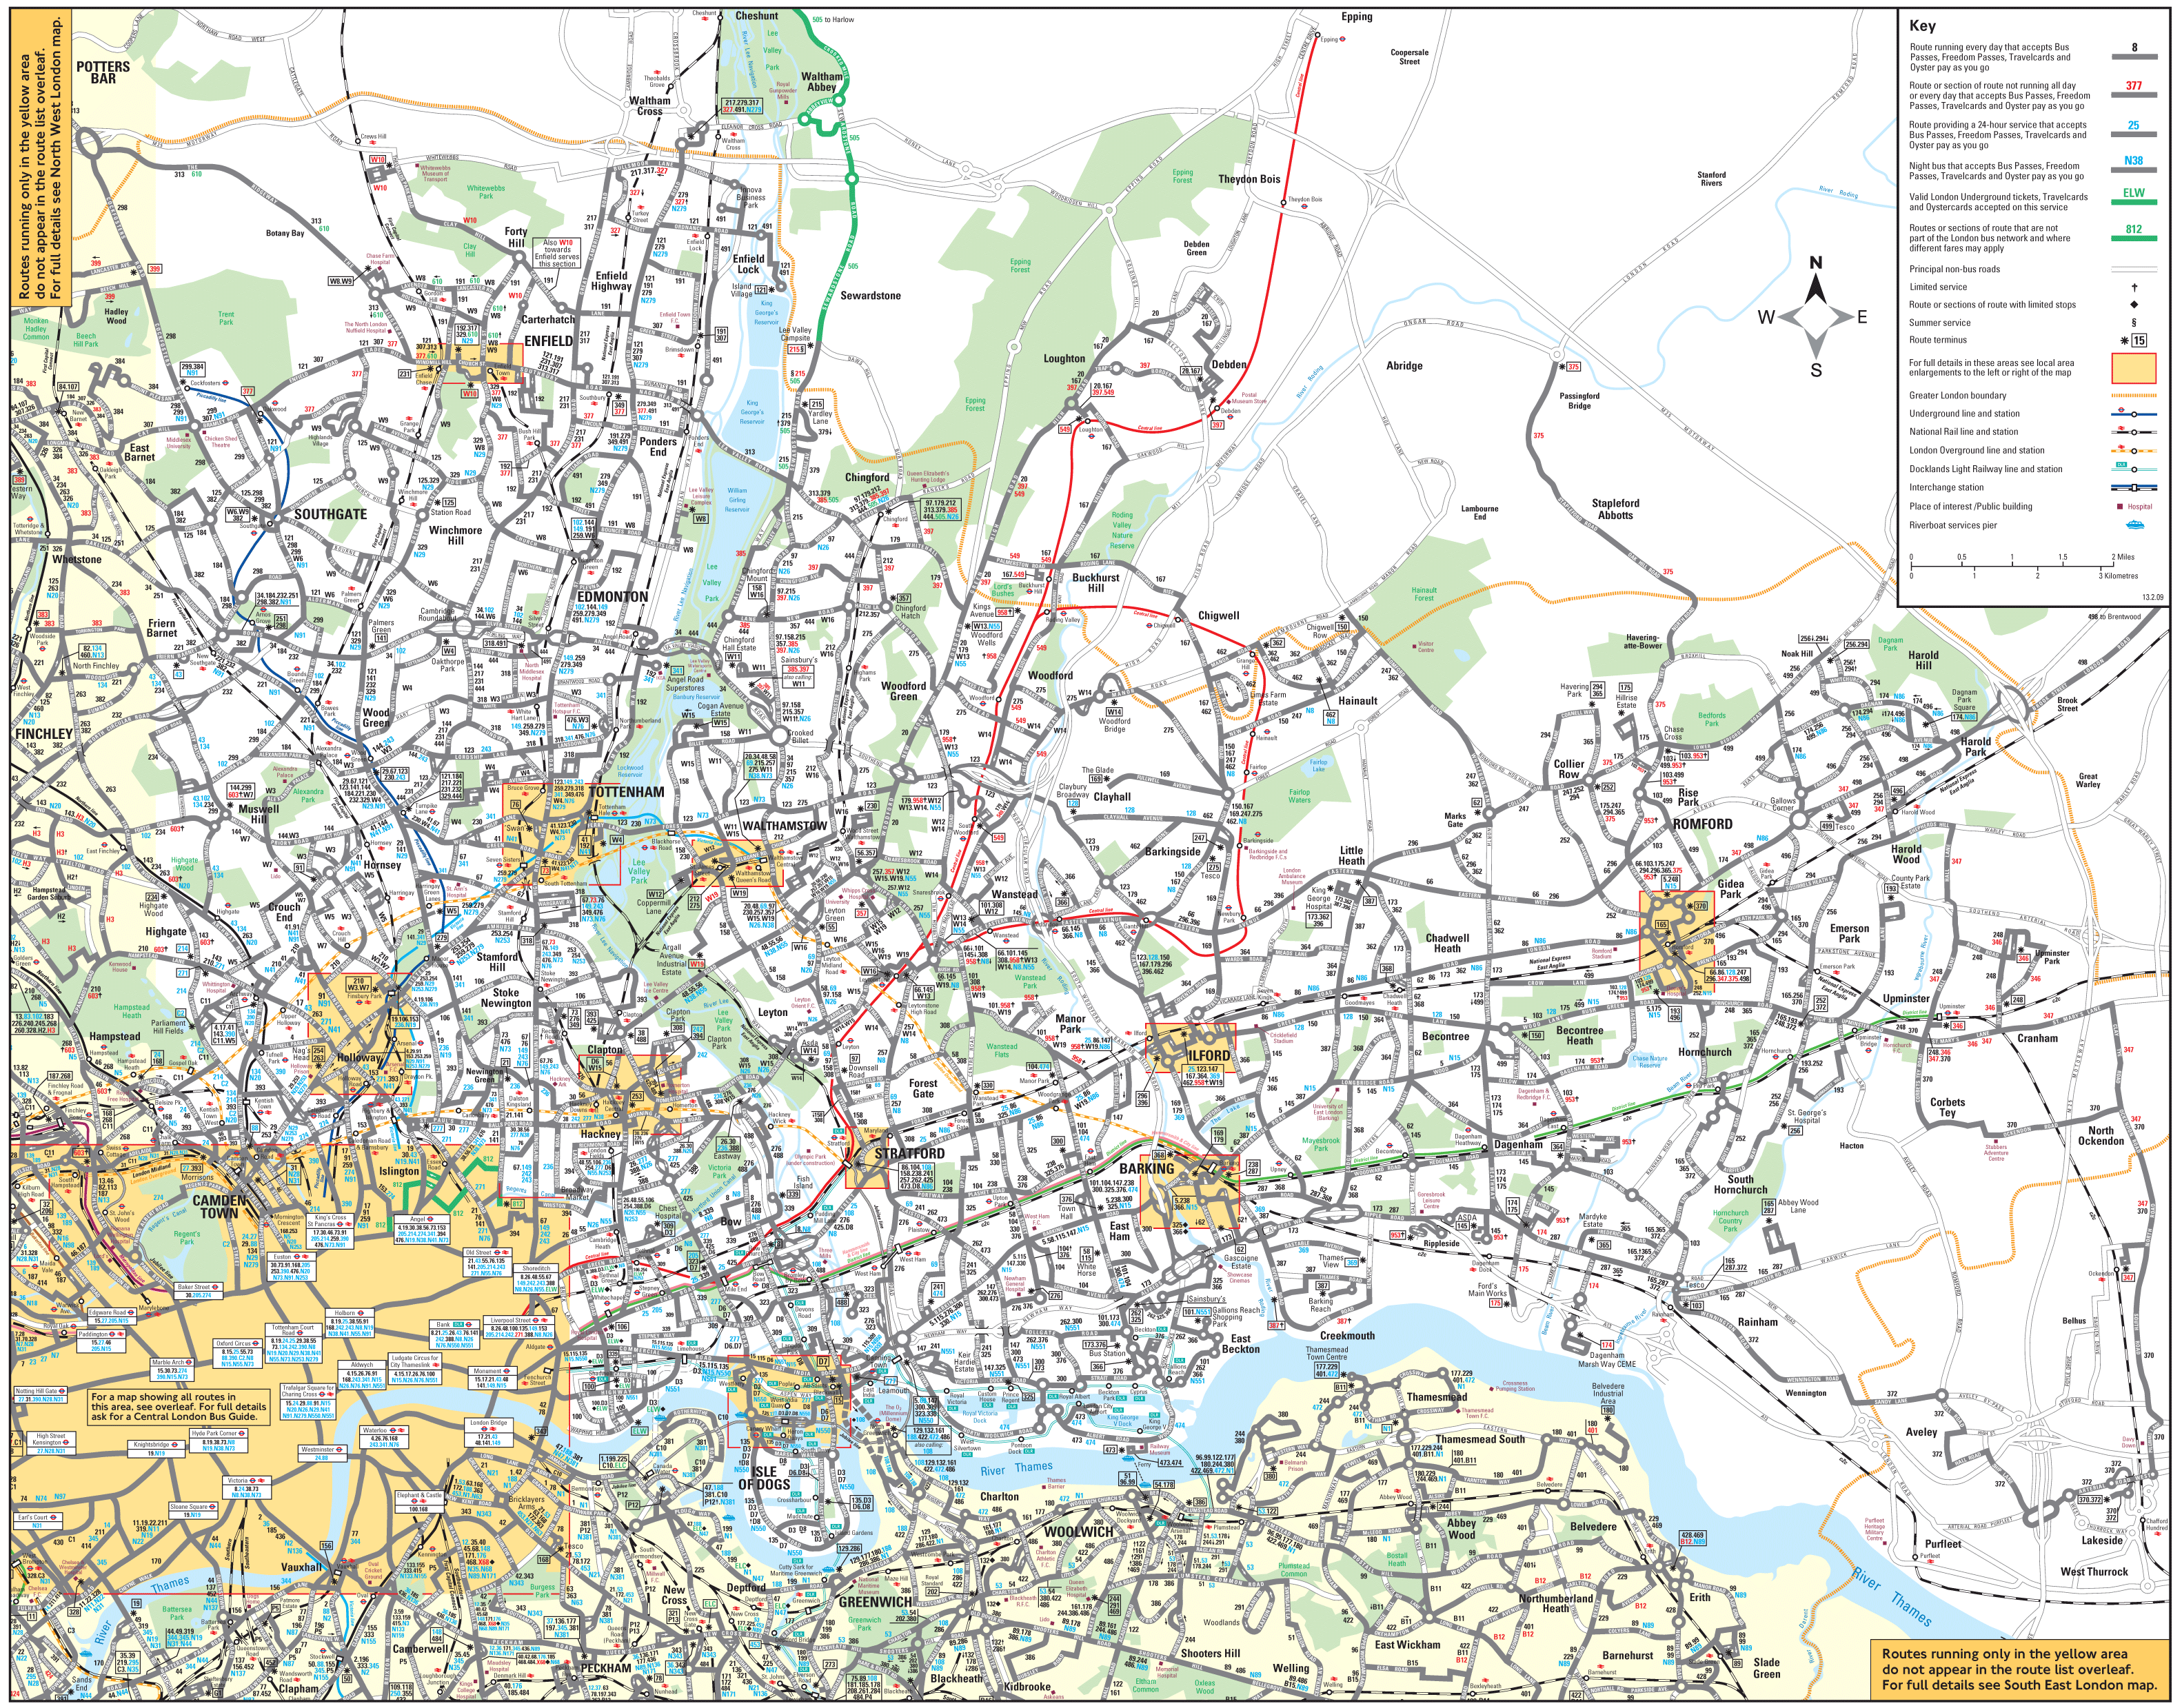 East London On Map.North East London Bus Map Mapsof Net